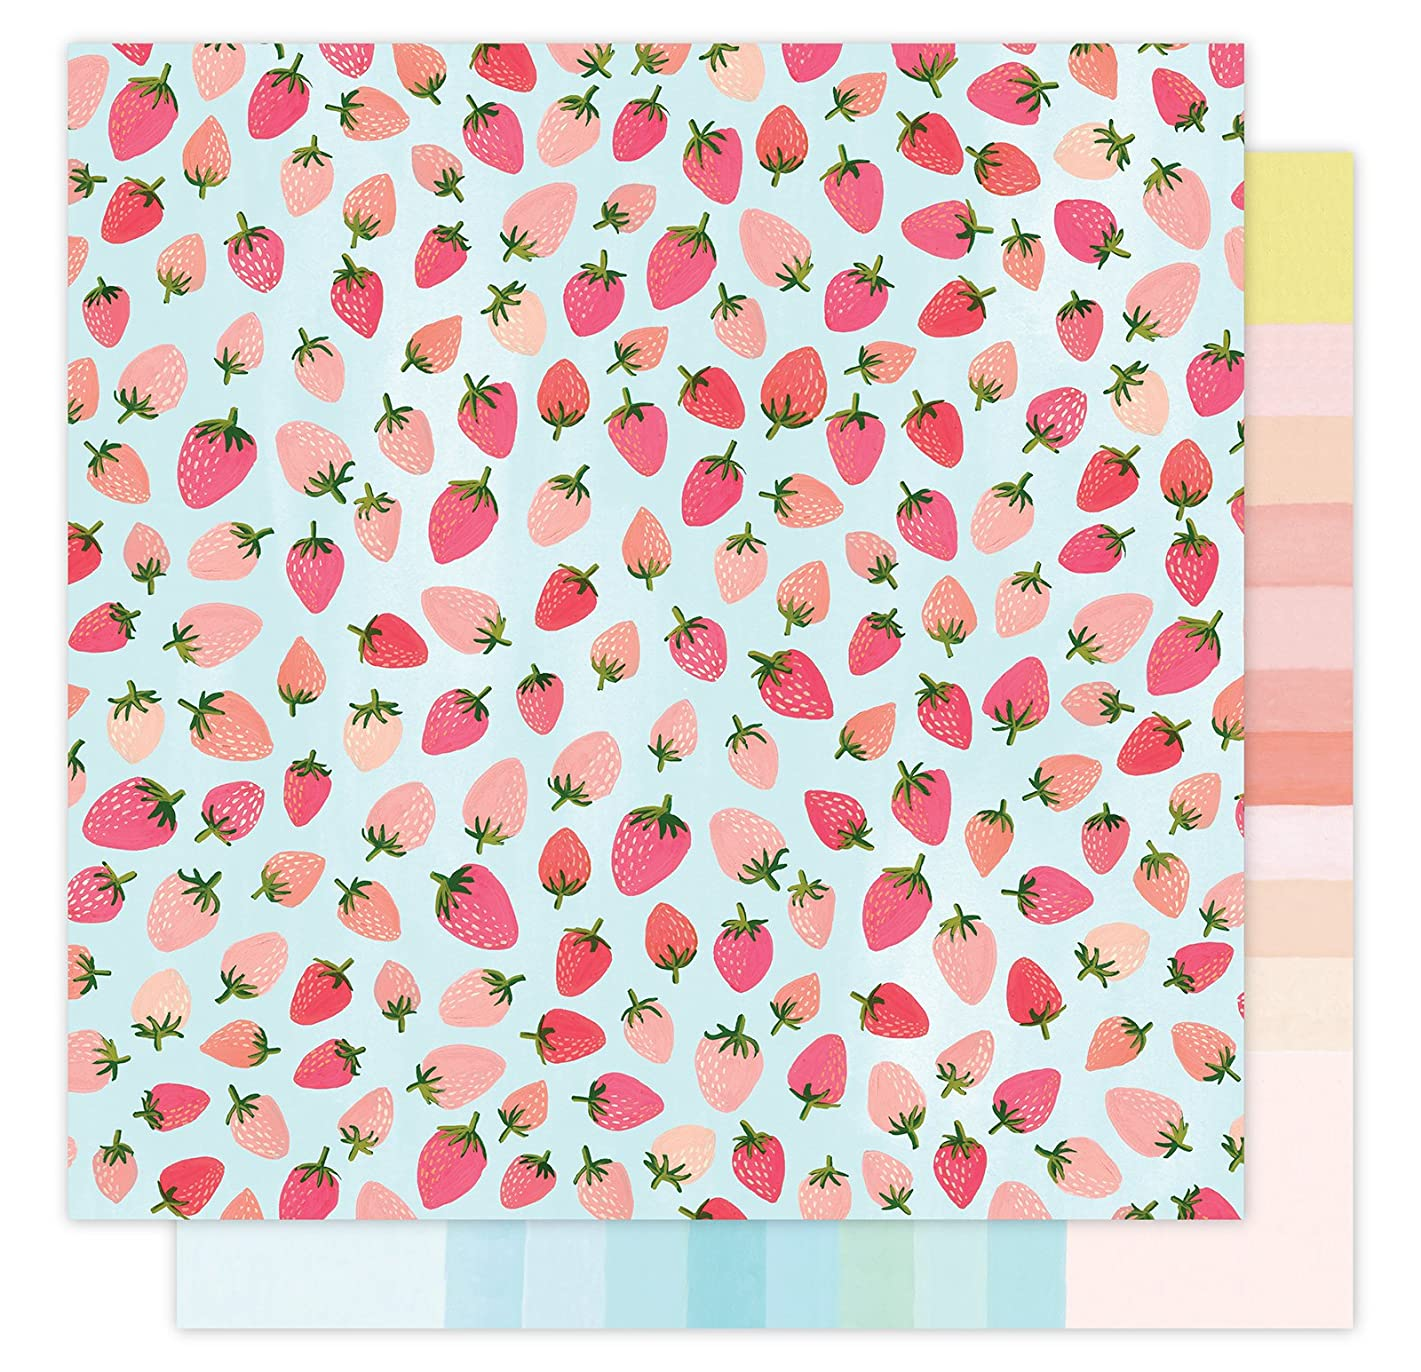 American Crafts 1 Canoe 2 Hazelwood Patterned Forest Berry 25 Pack of 12 x 12 Inch Paper, Piece